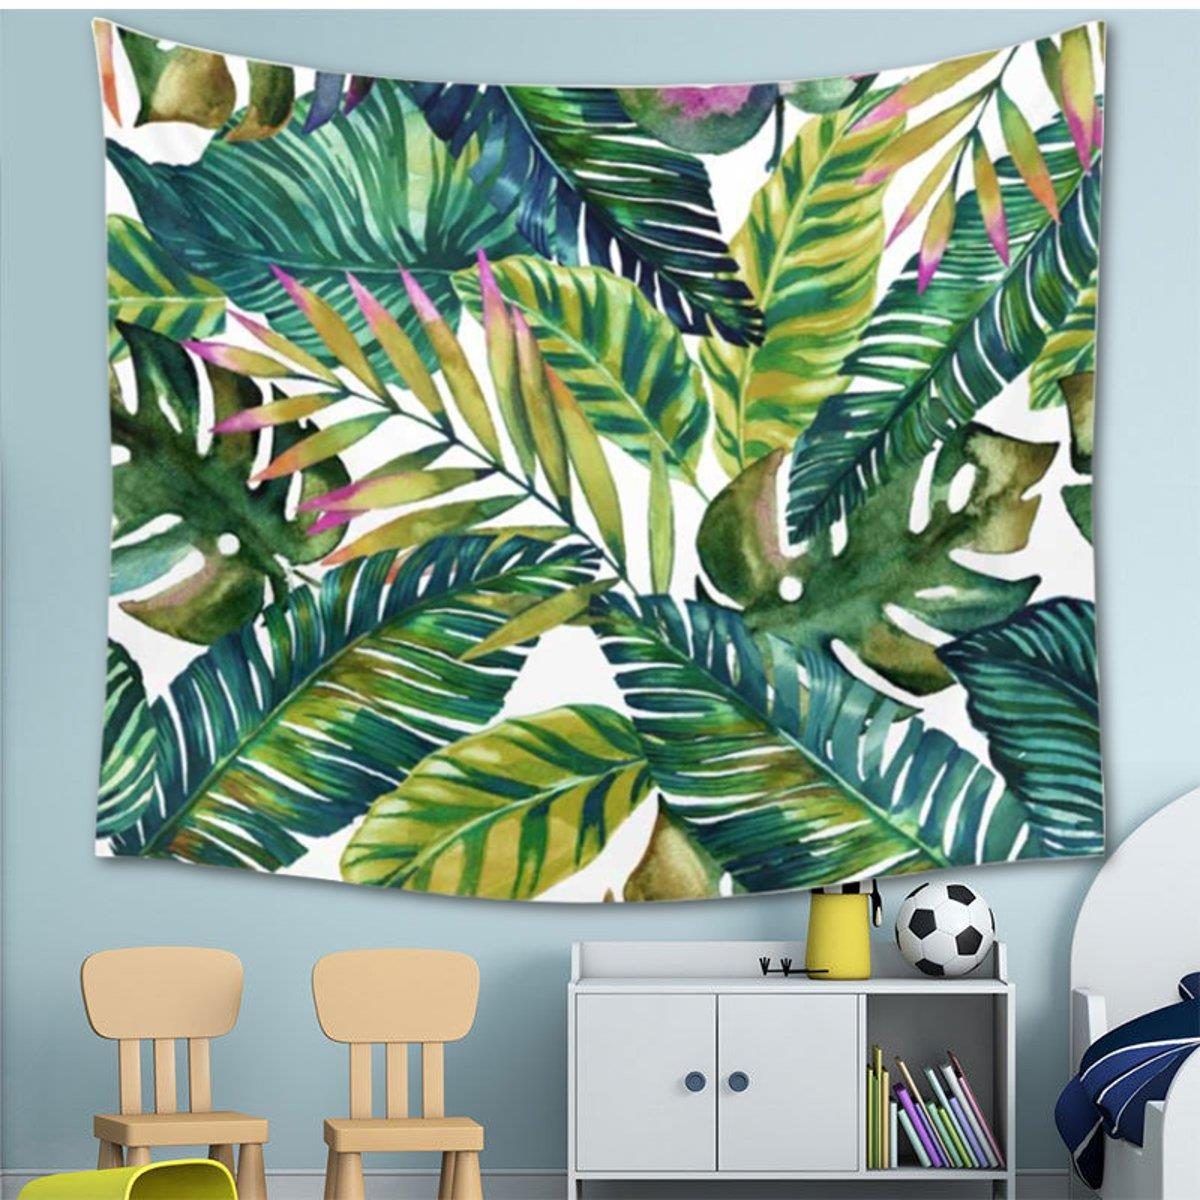 Wall Hanging Tropical Banana Leaves Tapestry Polyester Throw Blanket Home Room Decoration Bohemian Bedspread Dorm Cover In From Garden